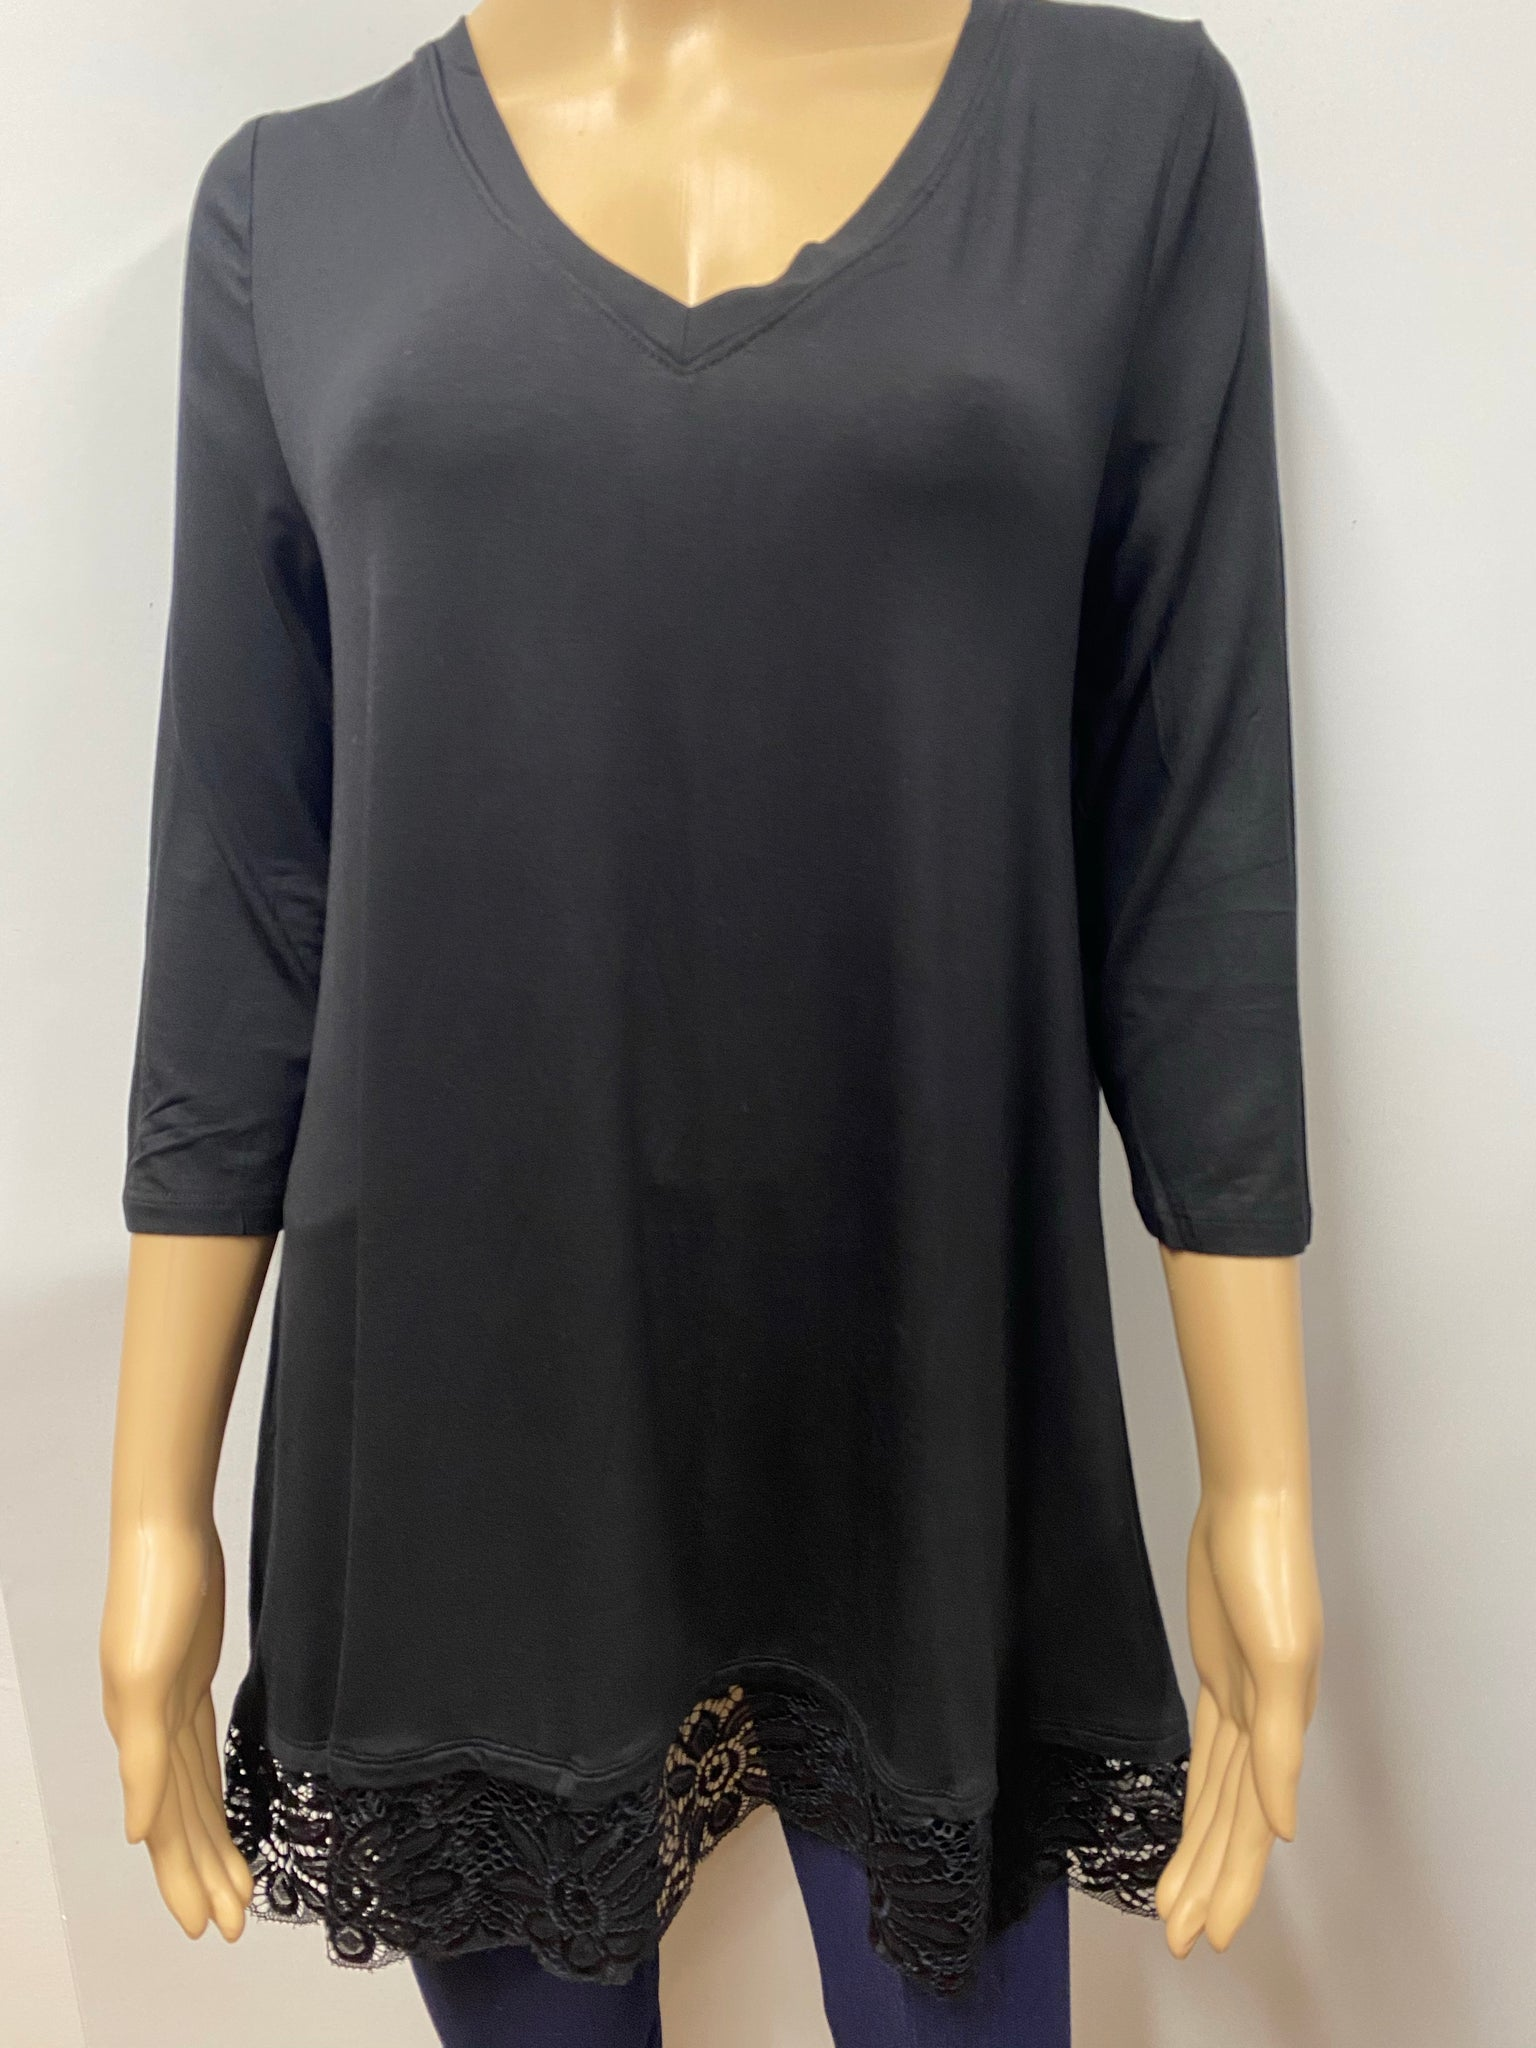 Black 3/4 Sleeve V-Neck Top with Lace Bottom Trim